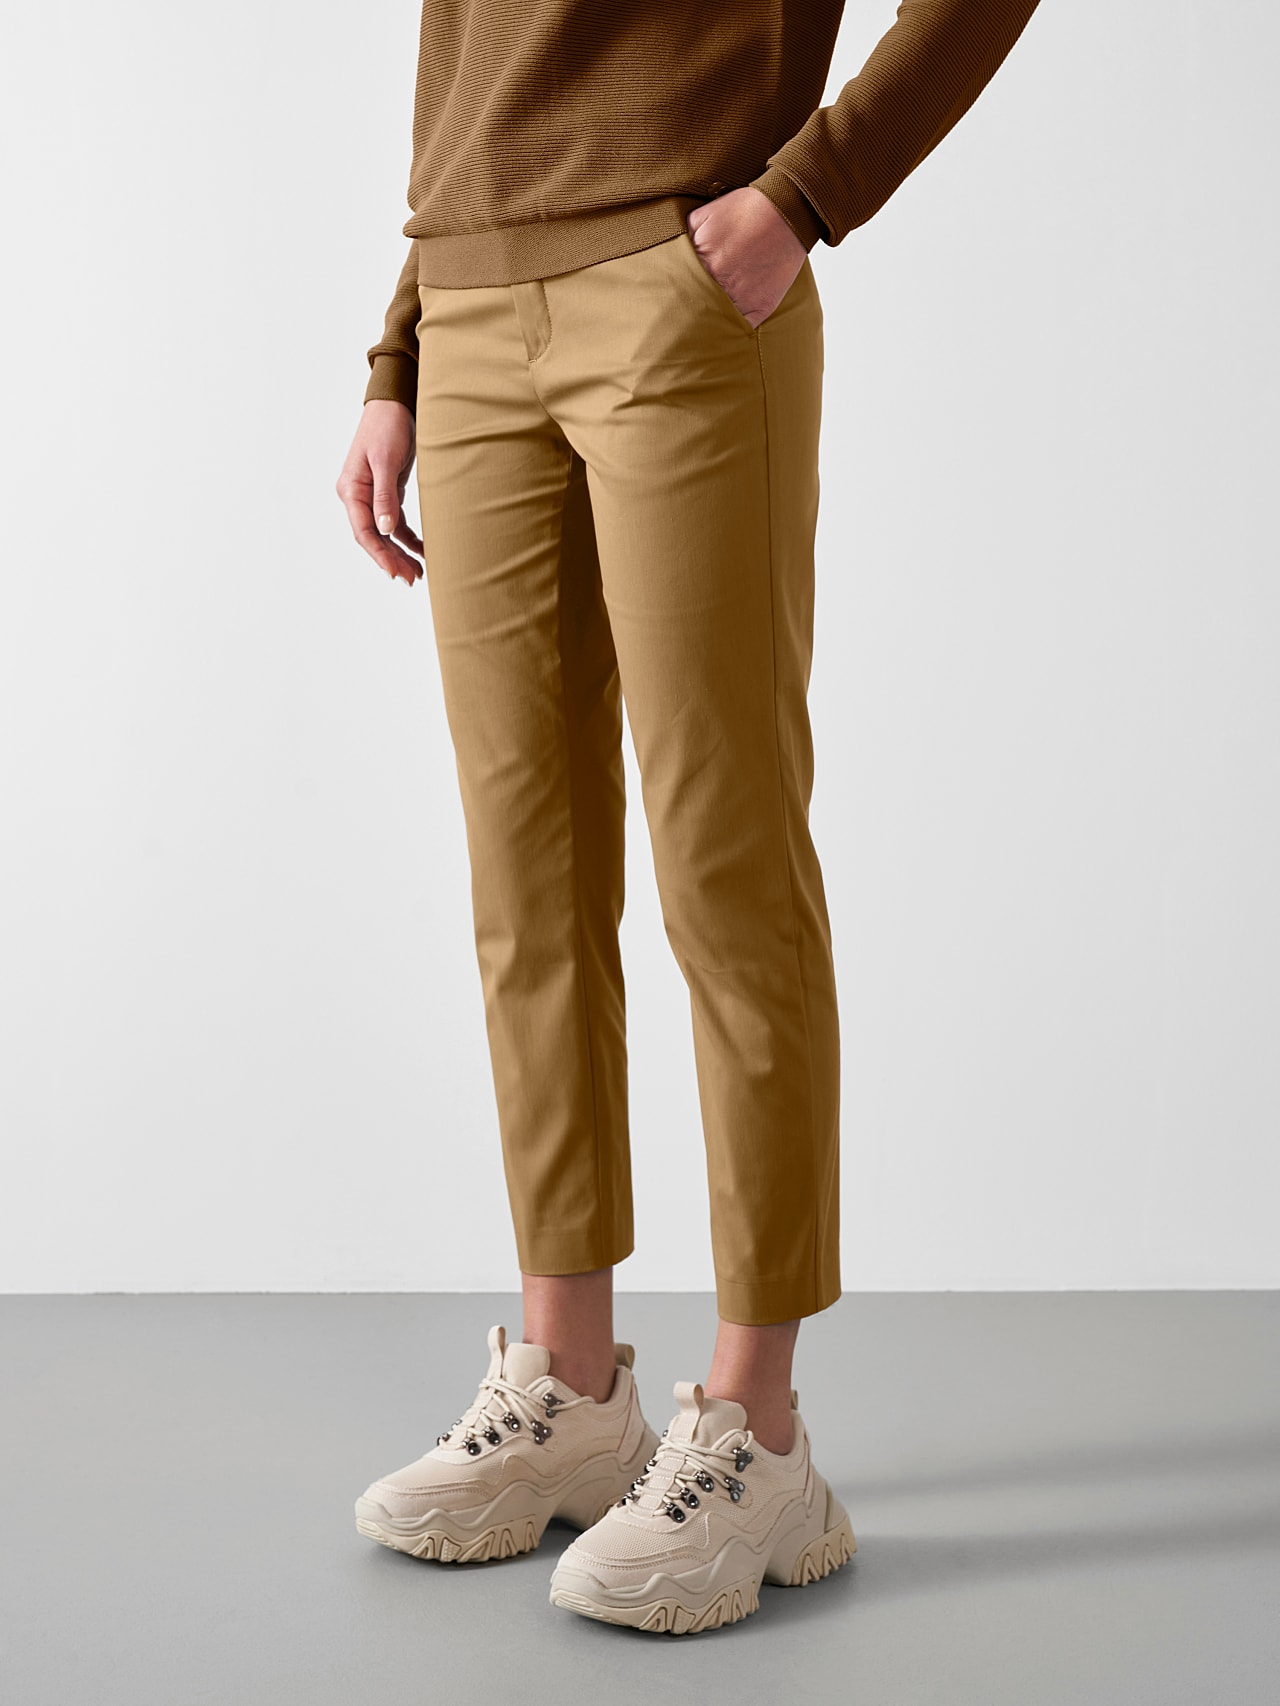 PEPPI V1.Y5.01 Water-Repellent Cotton-Twill Chino brown Model shot Alpha Tauri